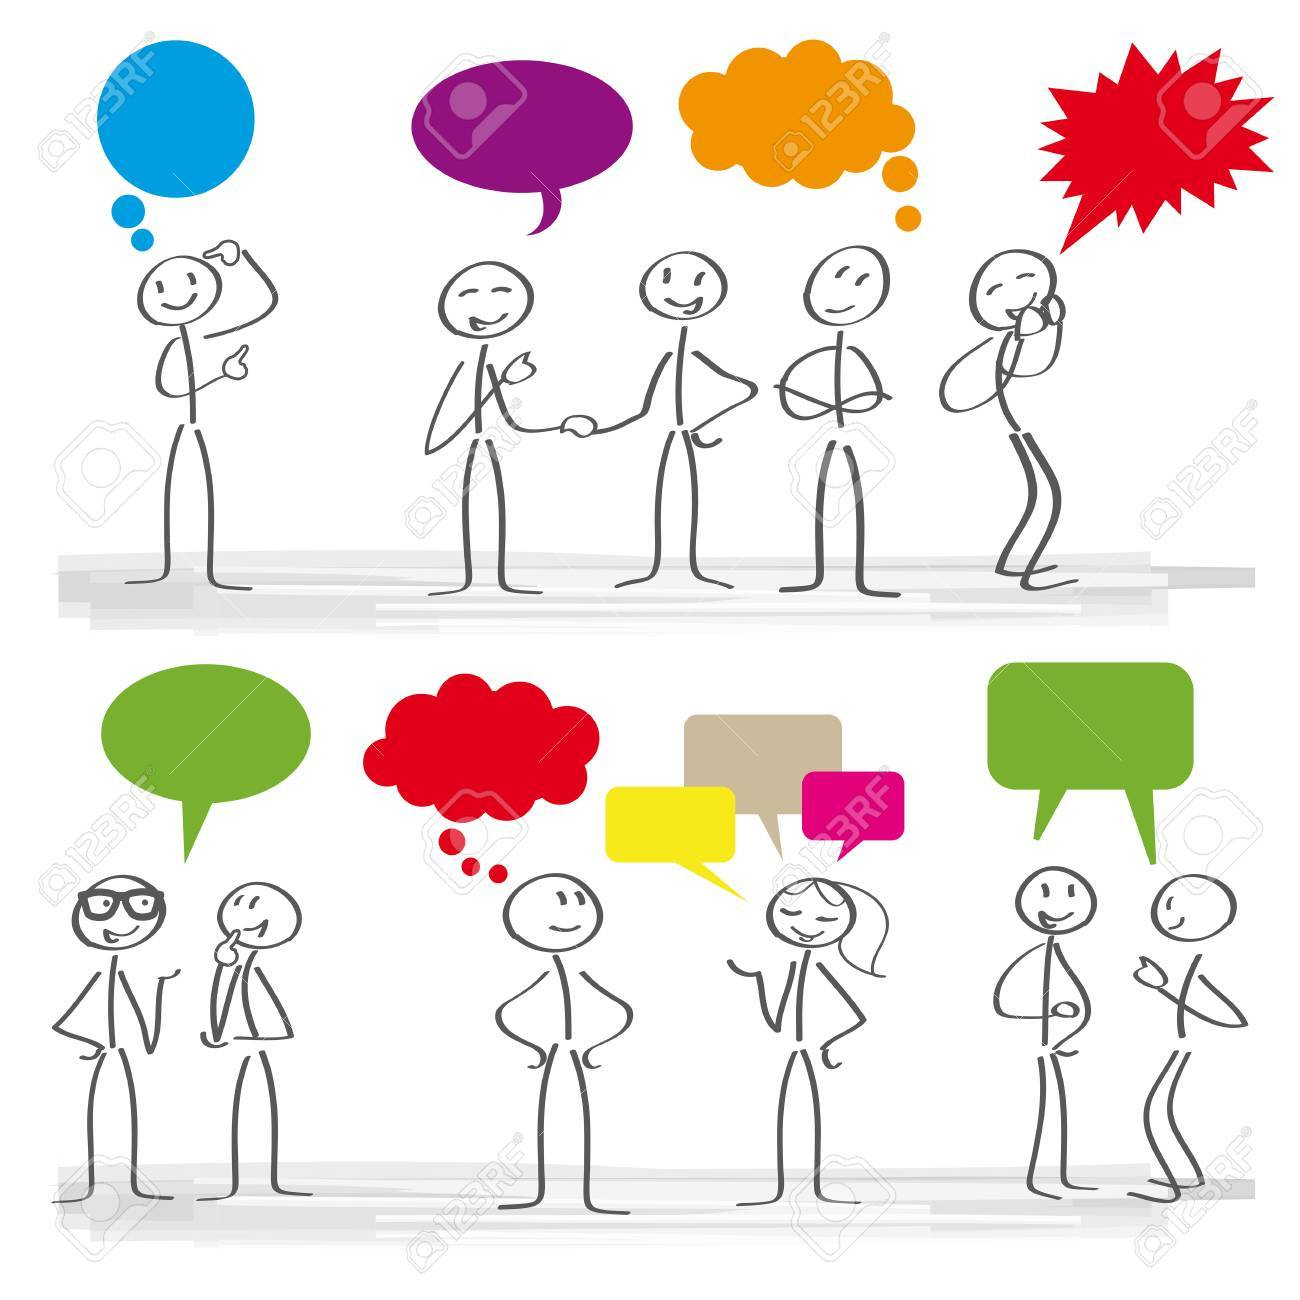 Stick figures with colorful dialog speech bubbles - 84645565